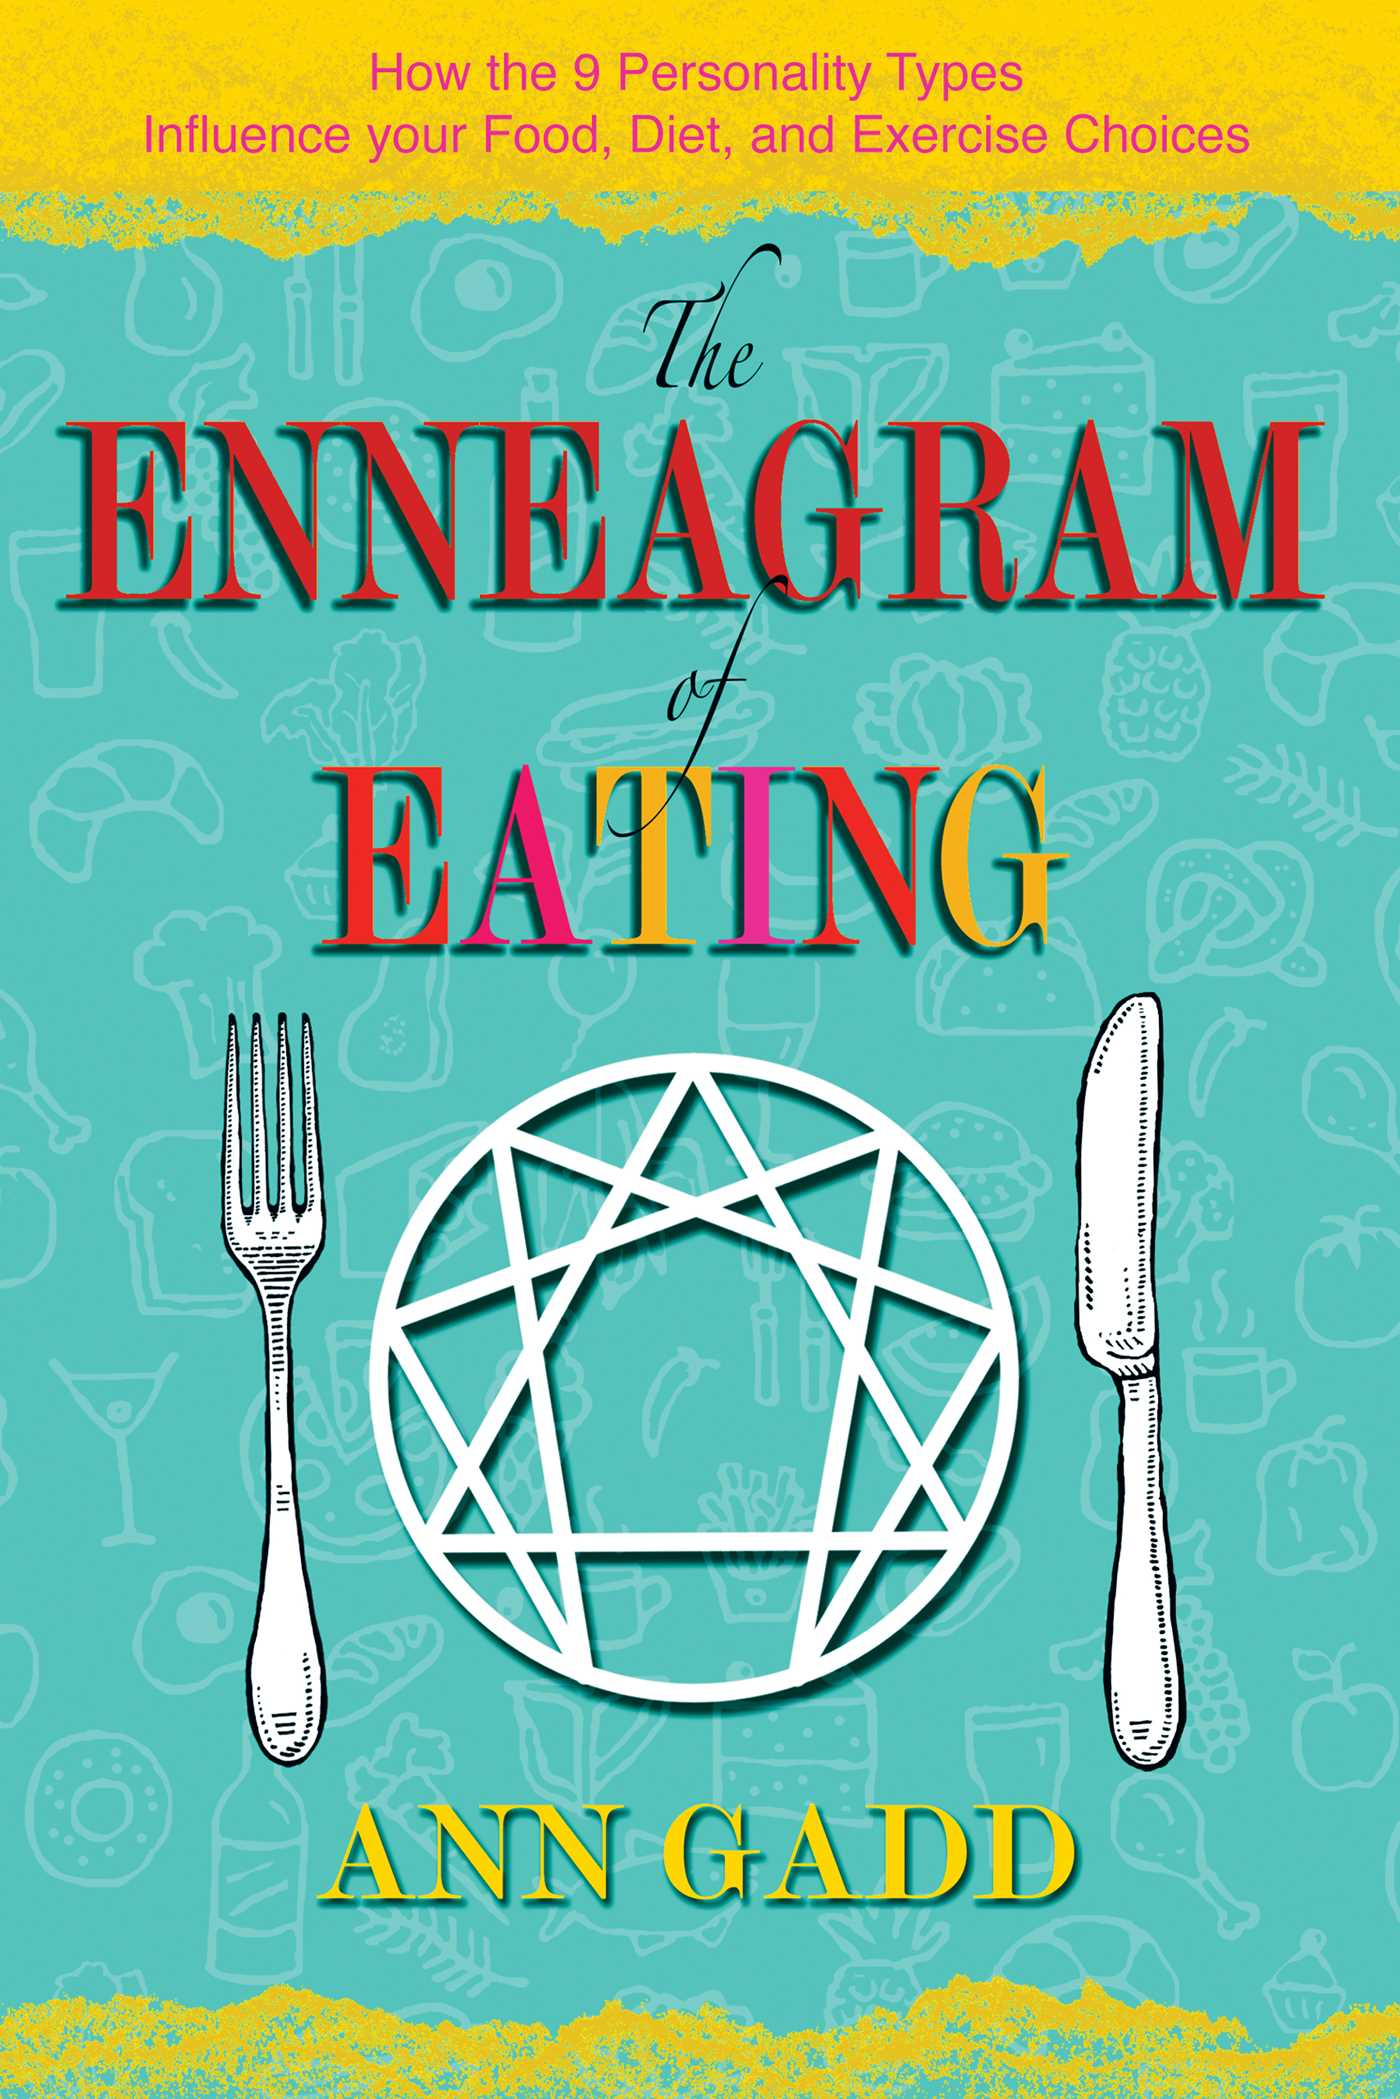 The enneagram of eating 9781620558287 hr